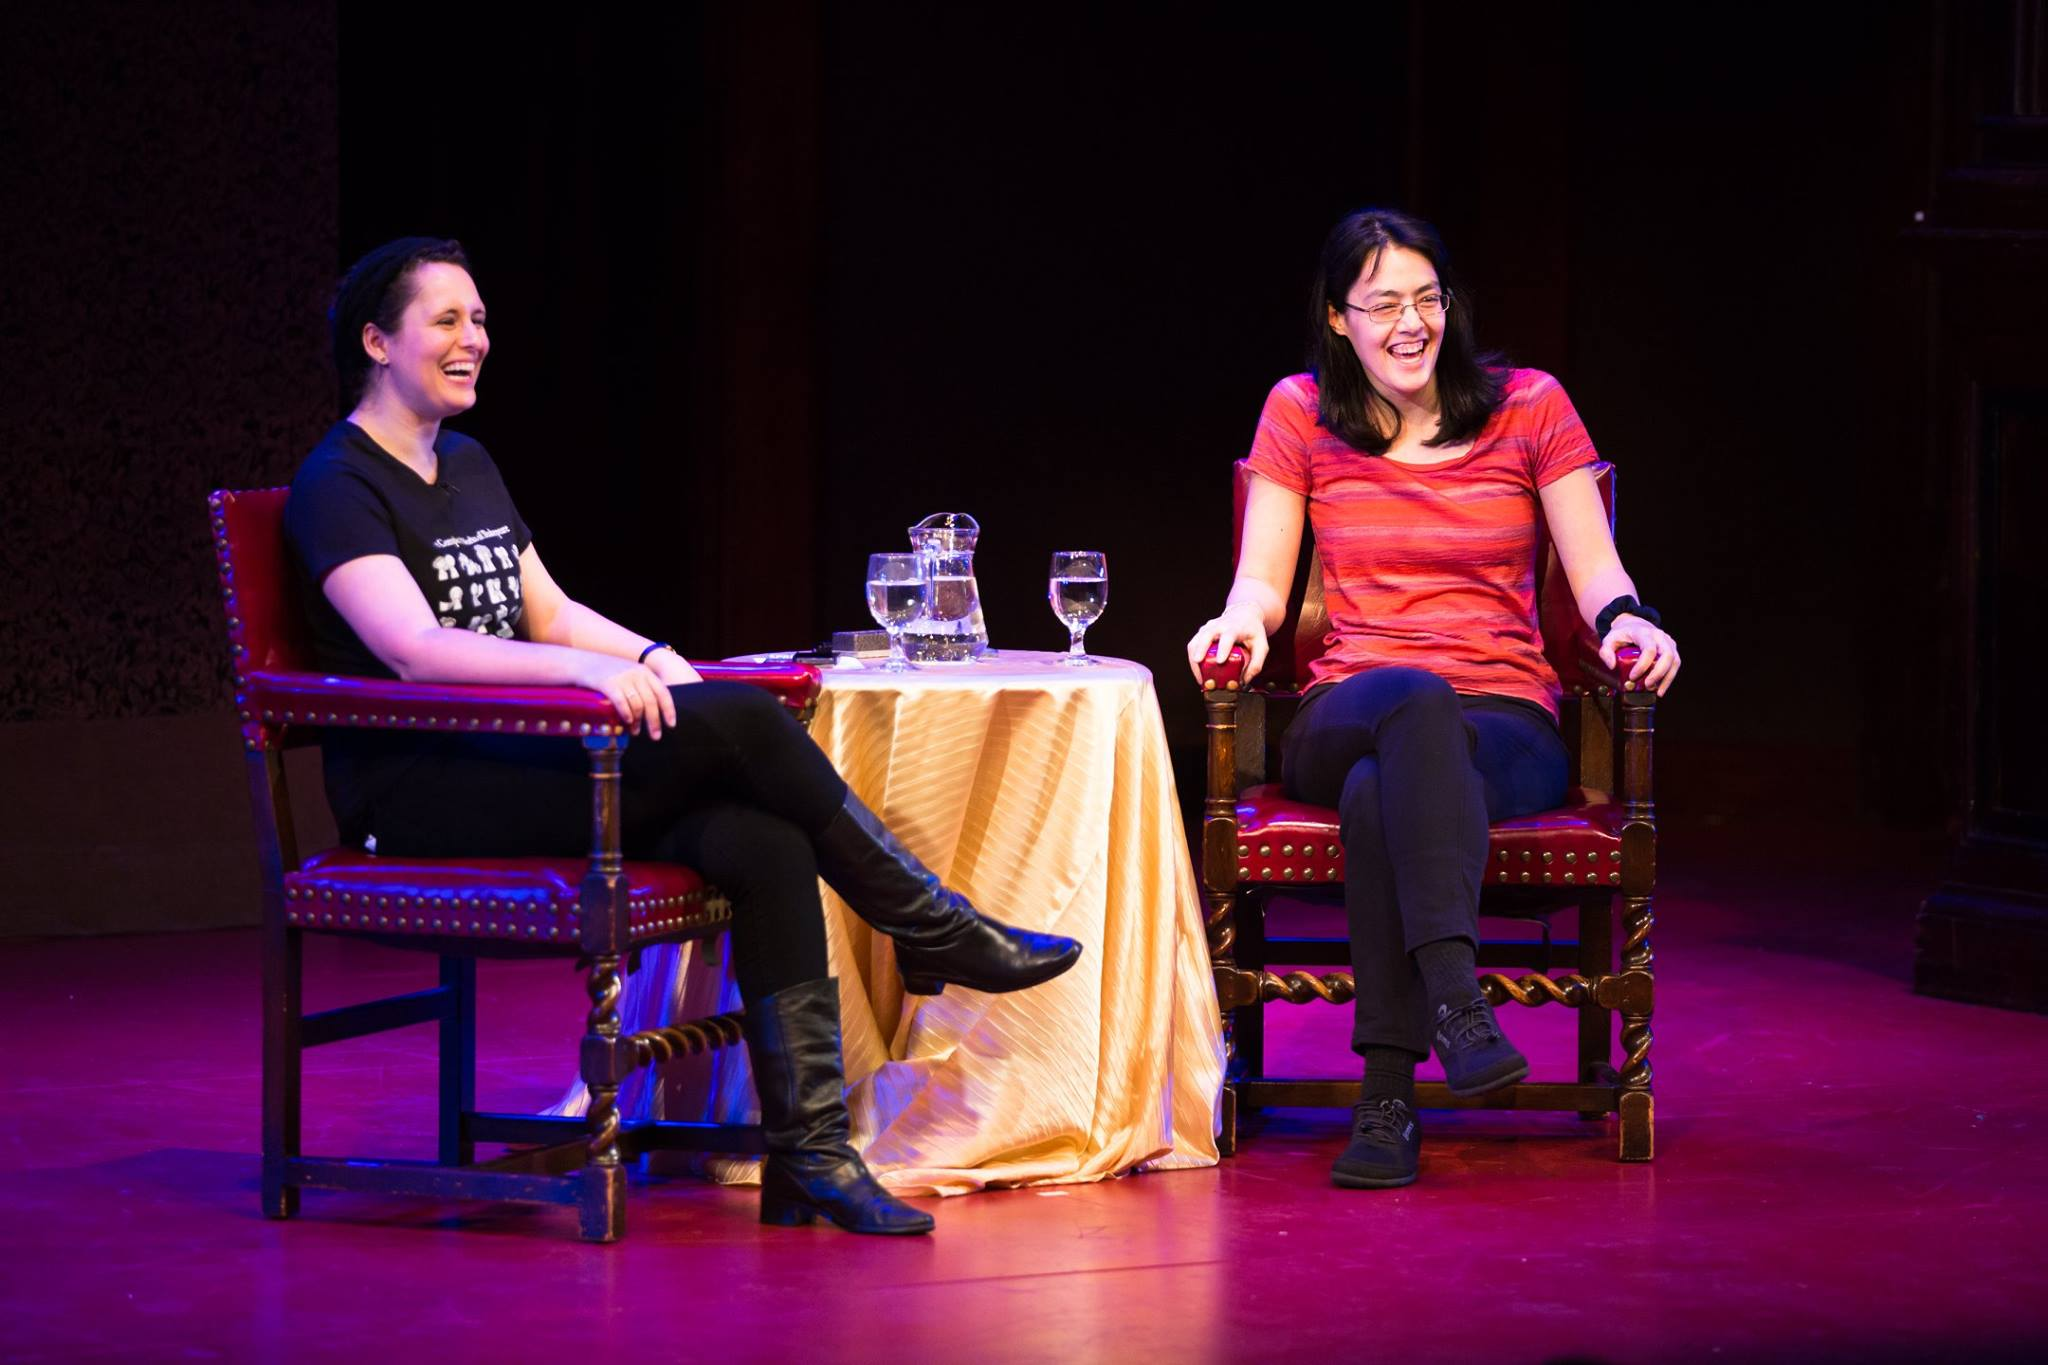 Interview with Mya Gosling at the Folger. Photo by Brittany Diliberto.